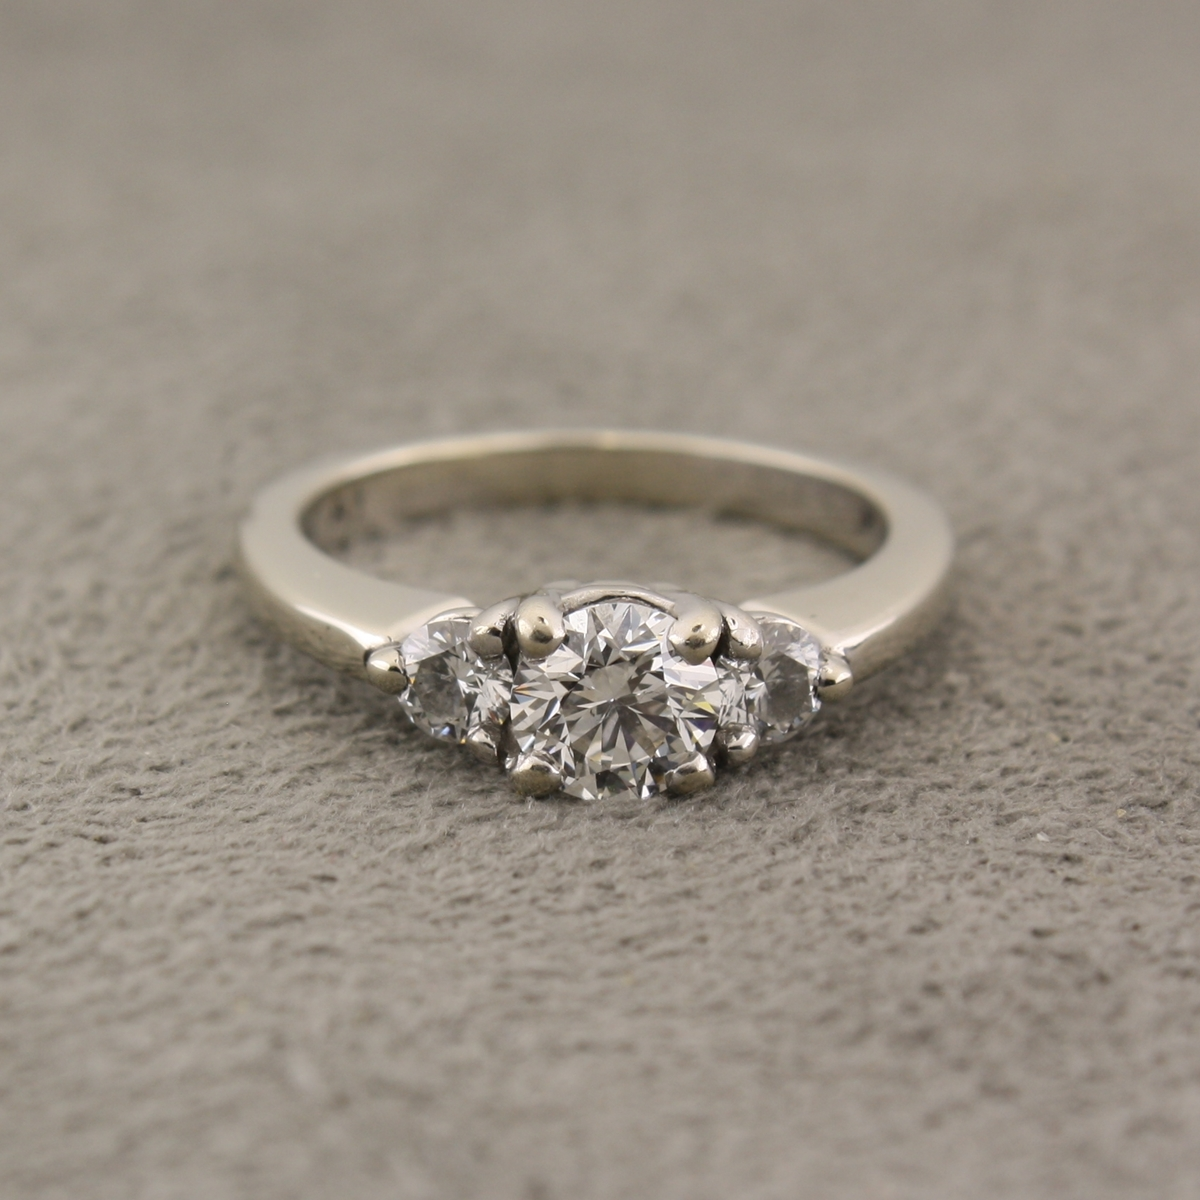 Preowned Wedding Rings: Pre-Owned Diamond Three-Stone Engagement Ring